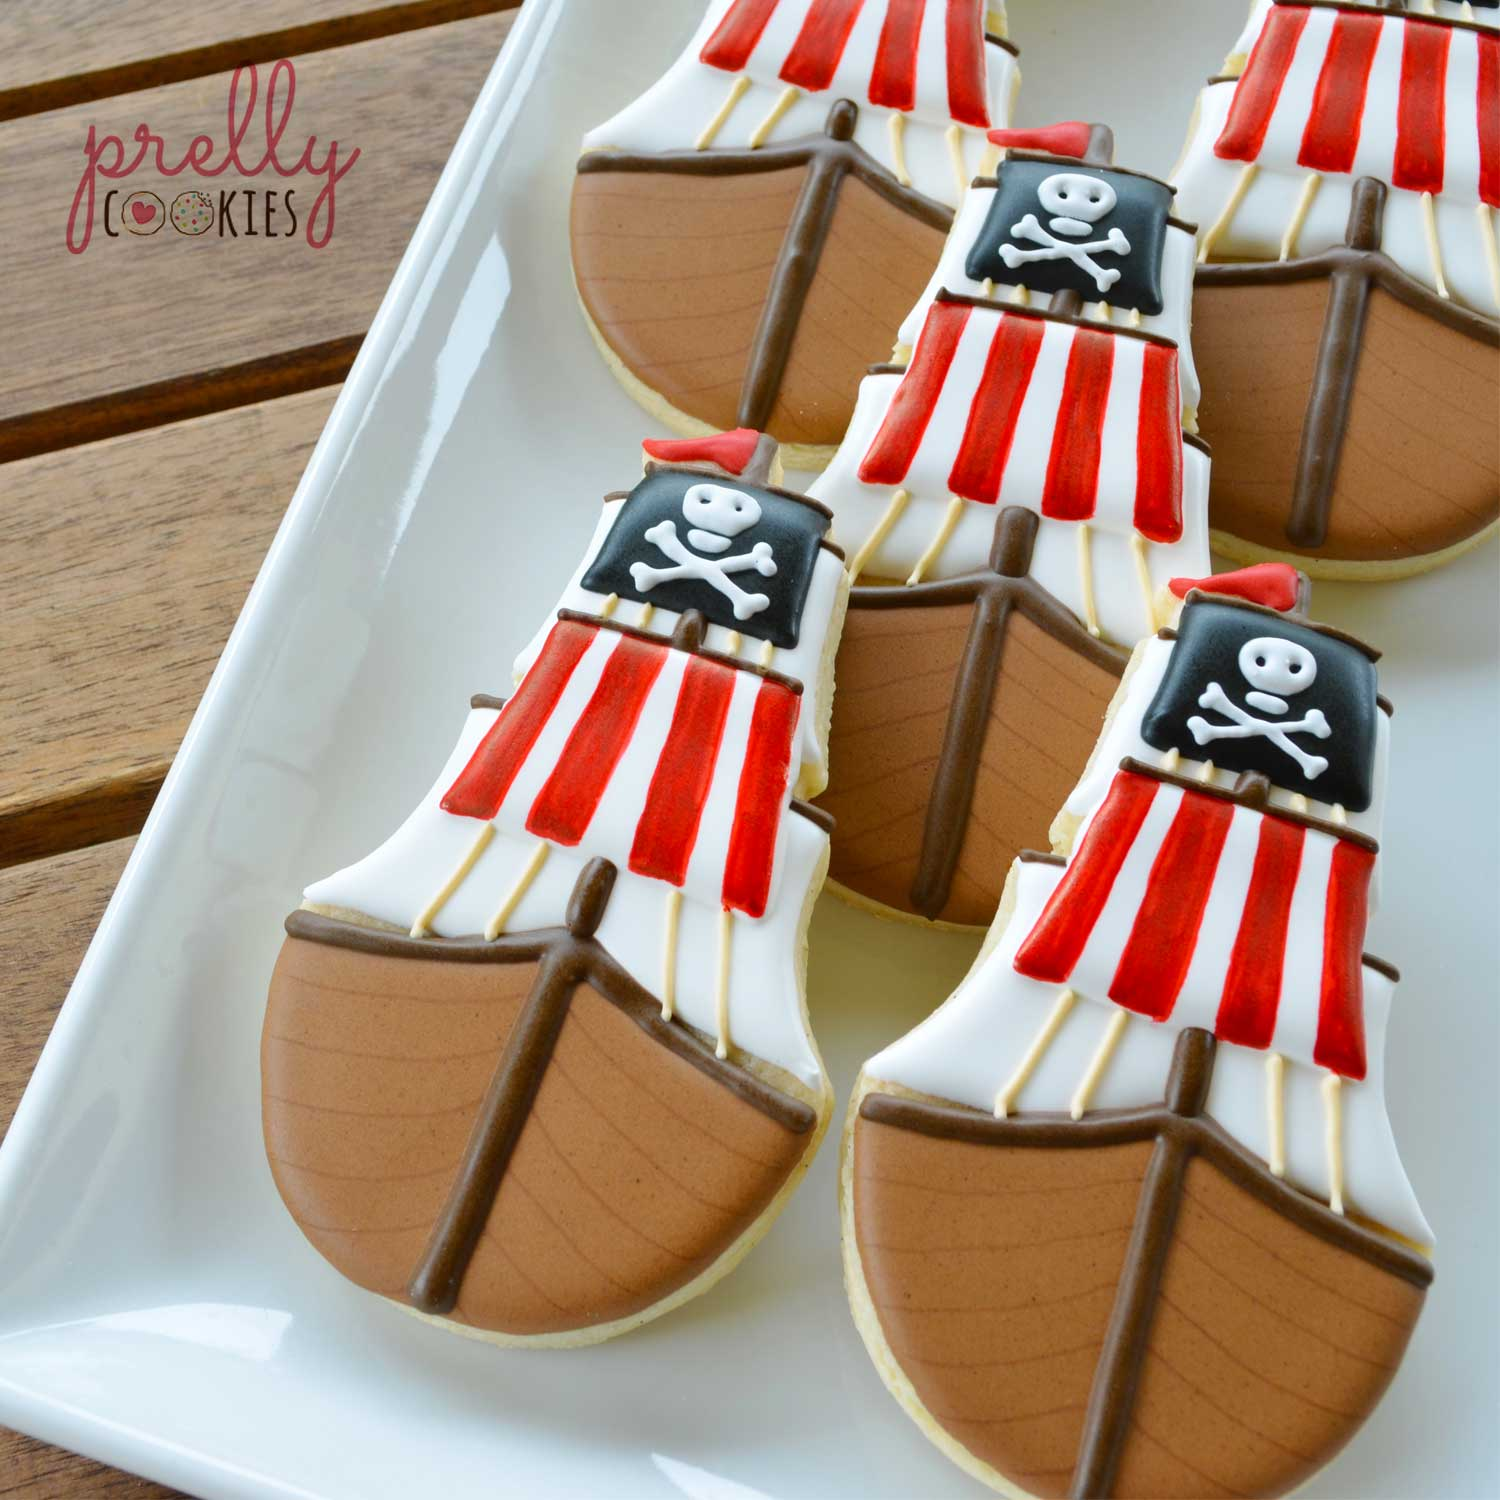 pirate-ship-cookies-square